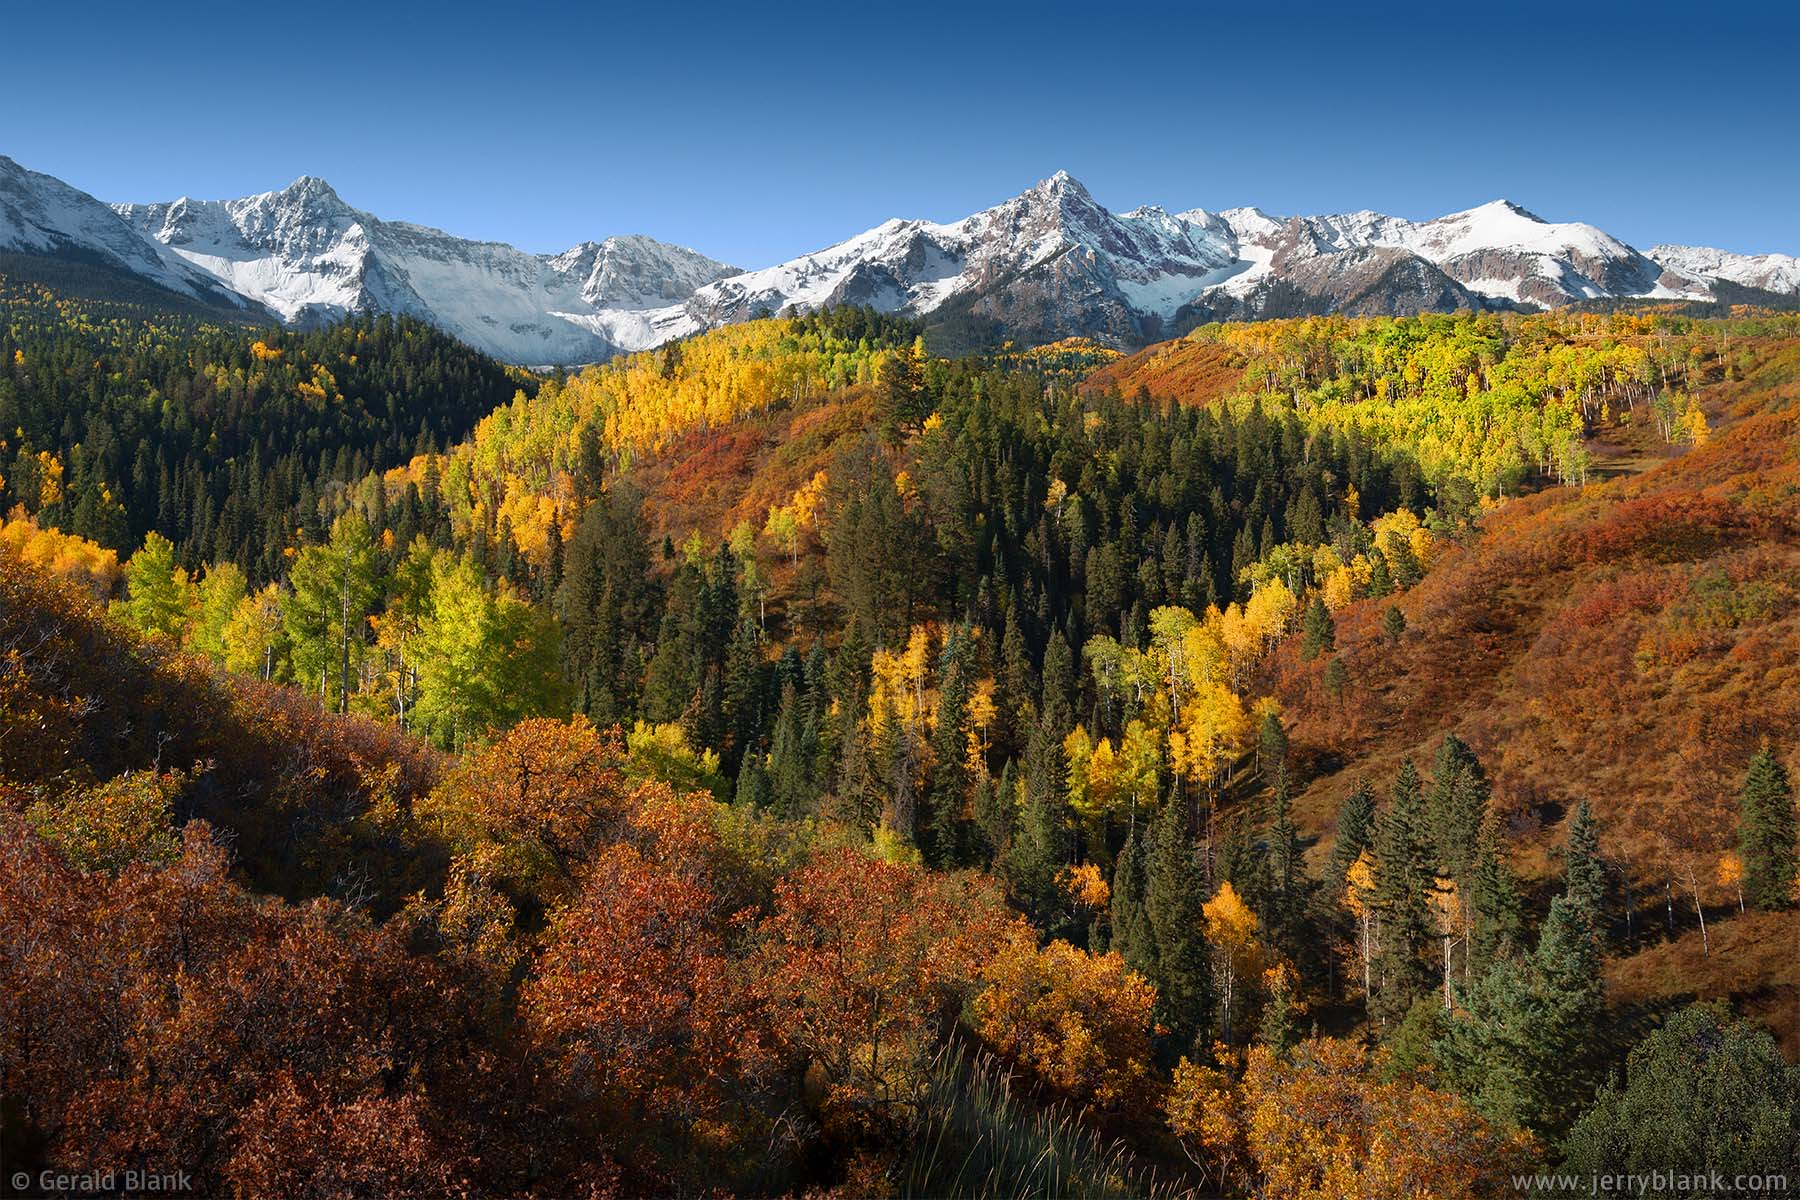 #06737 - Autumn colors near Mears Peak and Ruffner Mountain, San Juan Mountains, viewed from Ouray County Road 9 in Colorado - photo by Jerry Blank